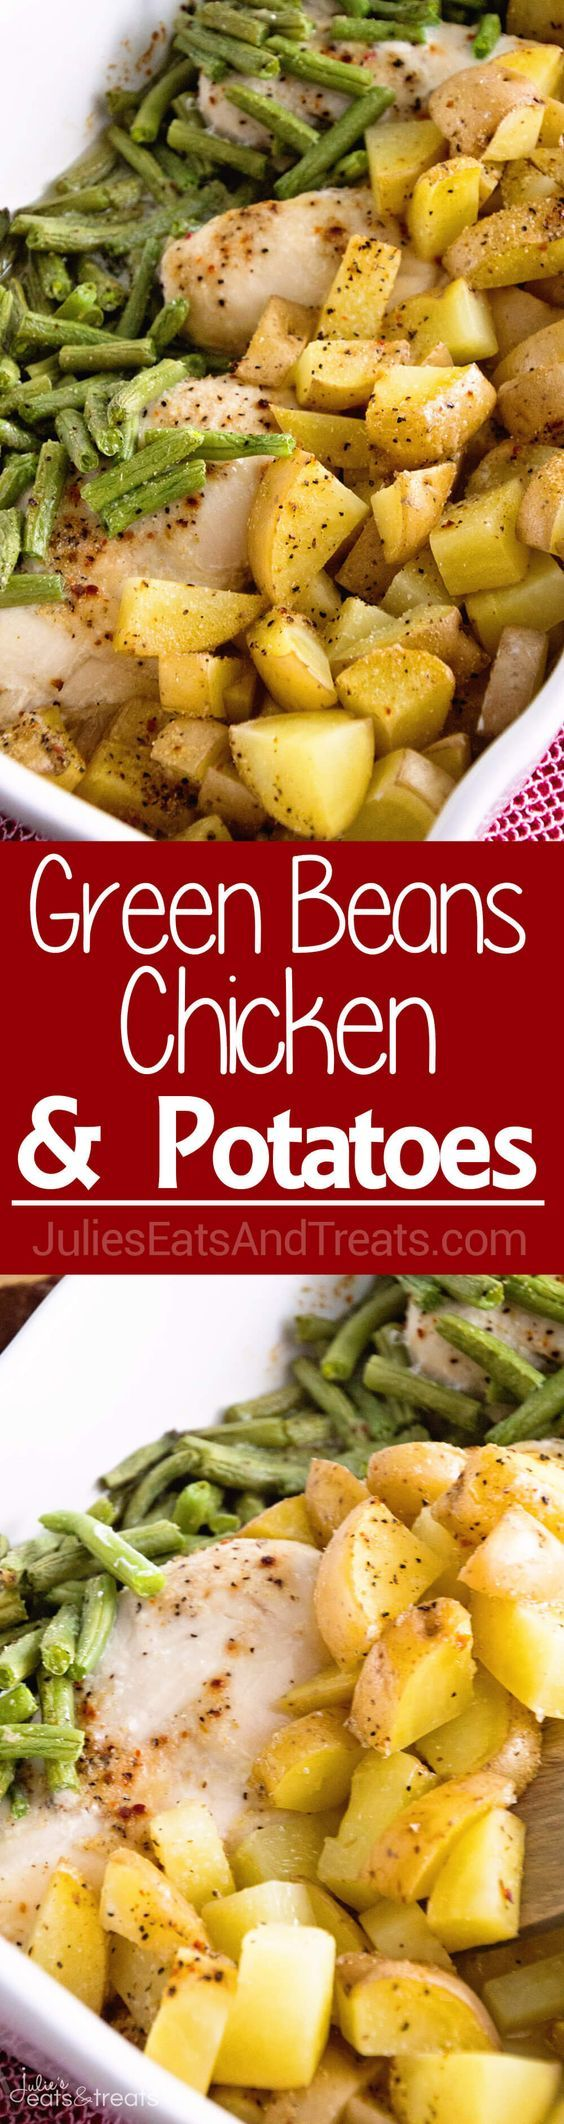 Green Beans, Chicken & Potatoes ~ an easy, one-pan wonder chicken dinner that will be a hit with the entire family!